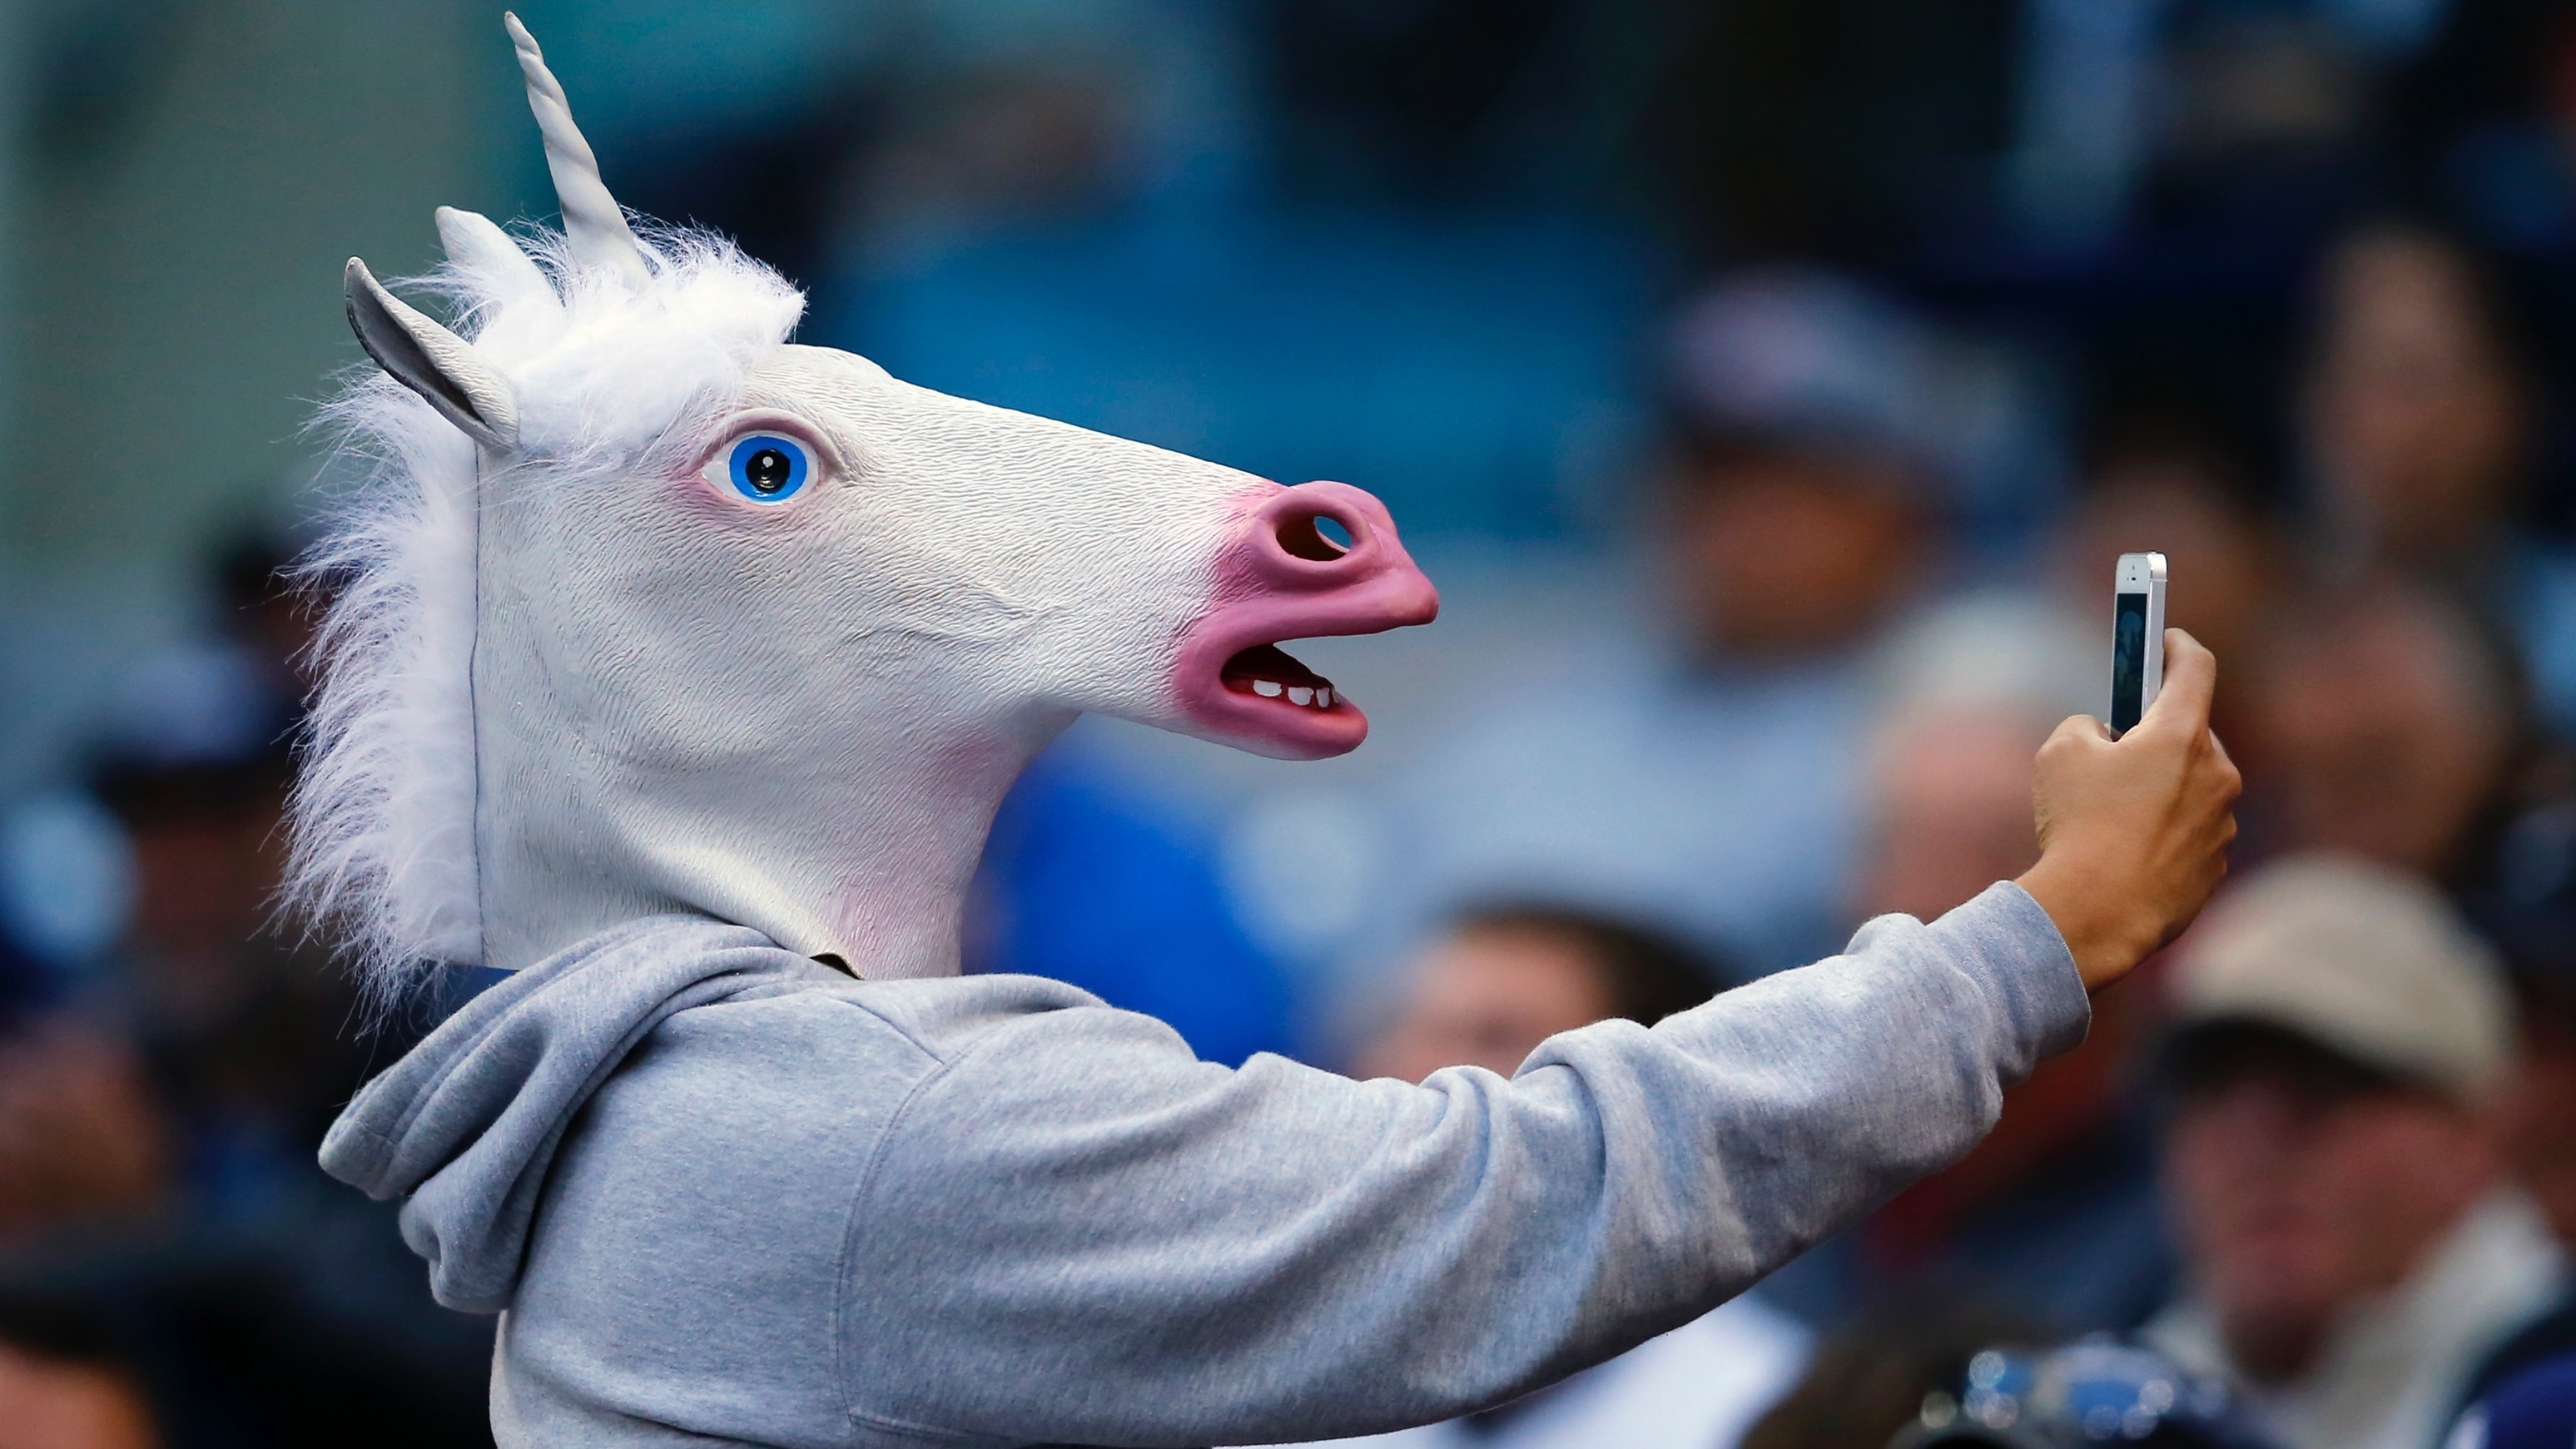 A baseball fan wearing a unicorn mask takes a picture of himself with his phone as he attends the Interleague MLB game between the San Diego Padres and the Toronto Blue Jays in San Diego, California June 2, 2013.    REUTERS/Mike Blake  (UNITED STATES - Tags: SPORT BASEBALL SOCIETY) - RTX109SM